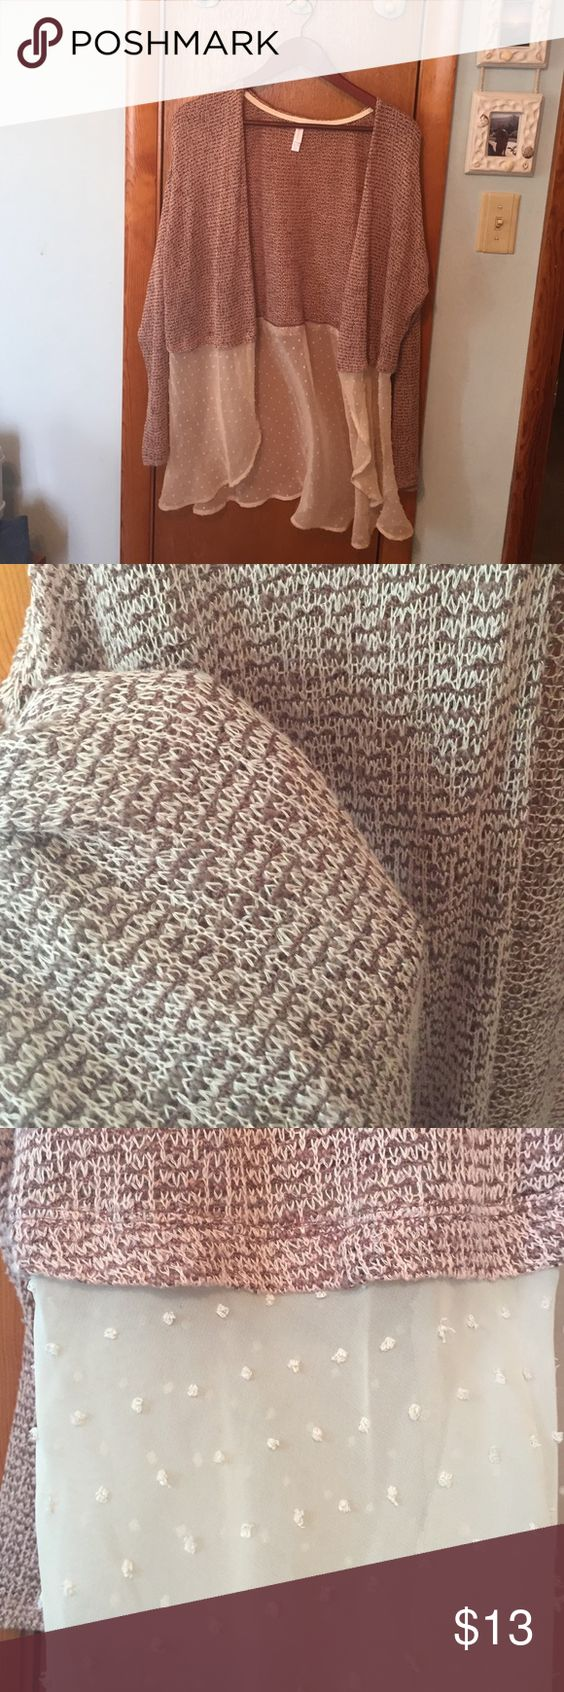 XXL Xhilaration Cardigan Like brand new cardigan only wore once...has sweater top and sheer bottom. Top is brown & rose bottom is cream. Xhilaration Sweaters Cardigans